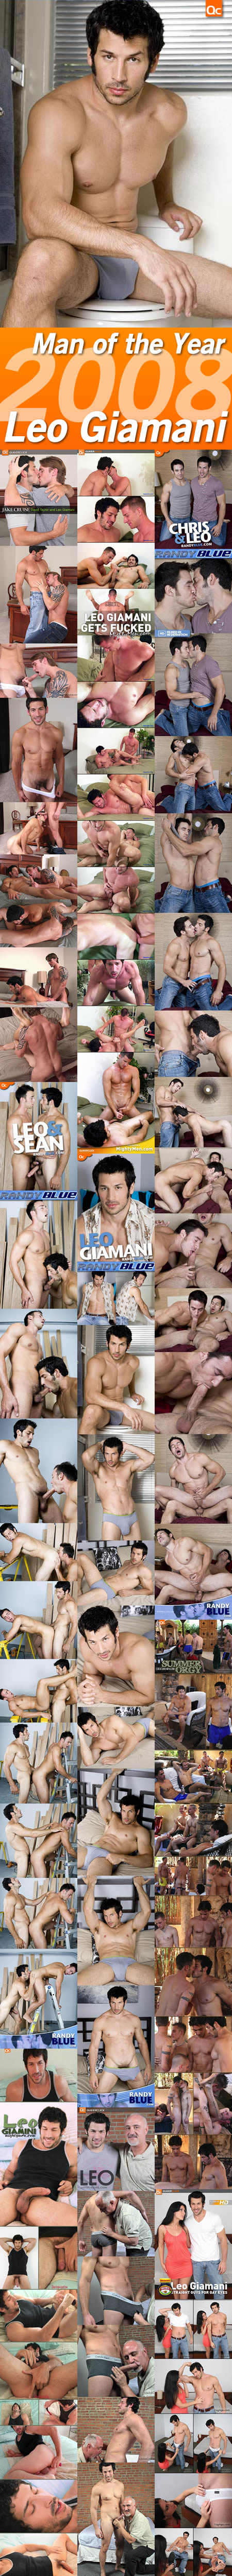 QueerClick's 2008 Man of the Year: Leo Giamani